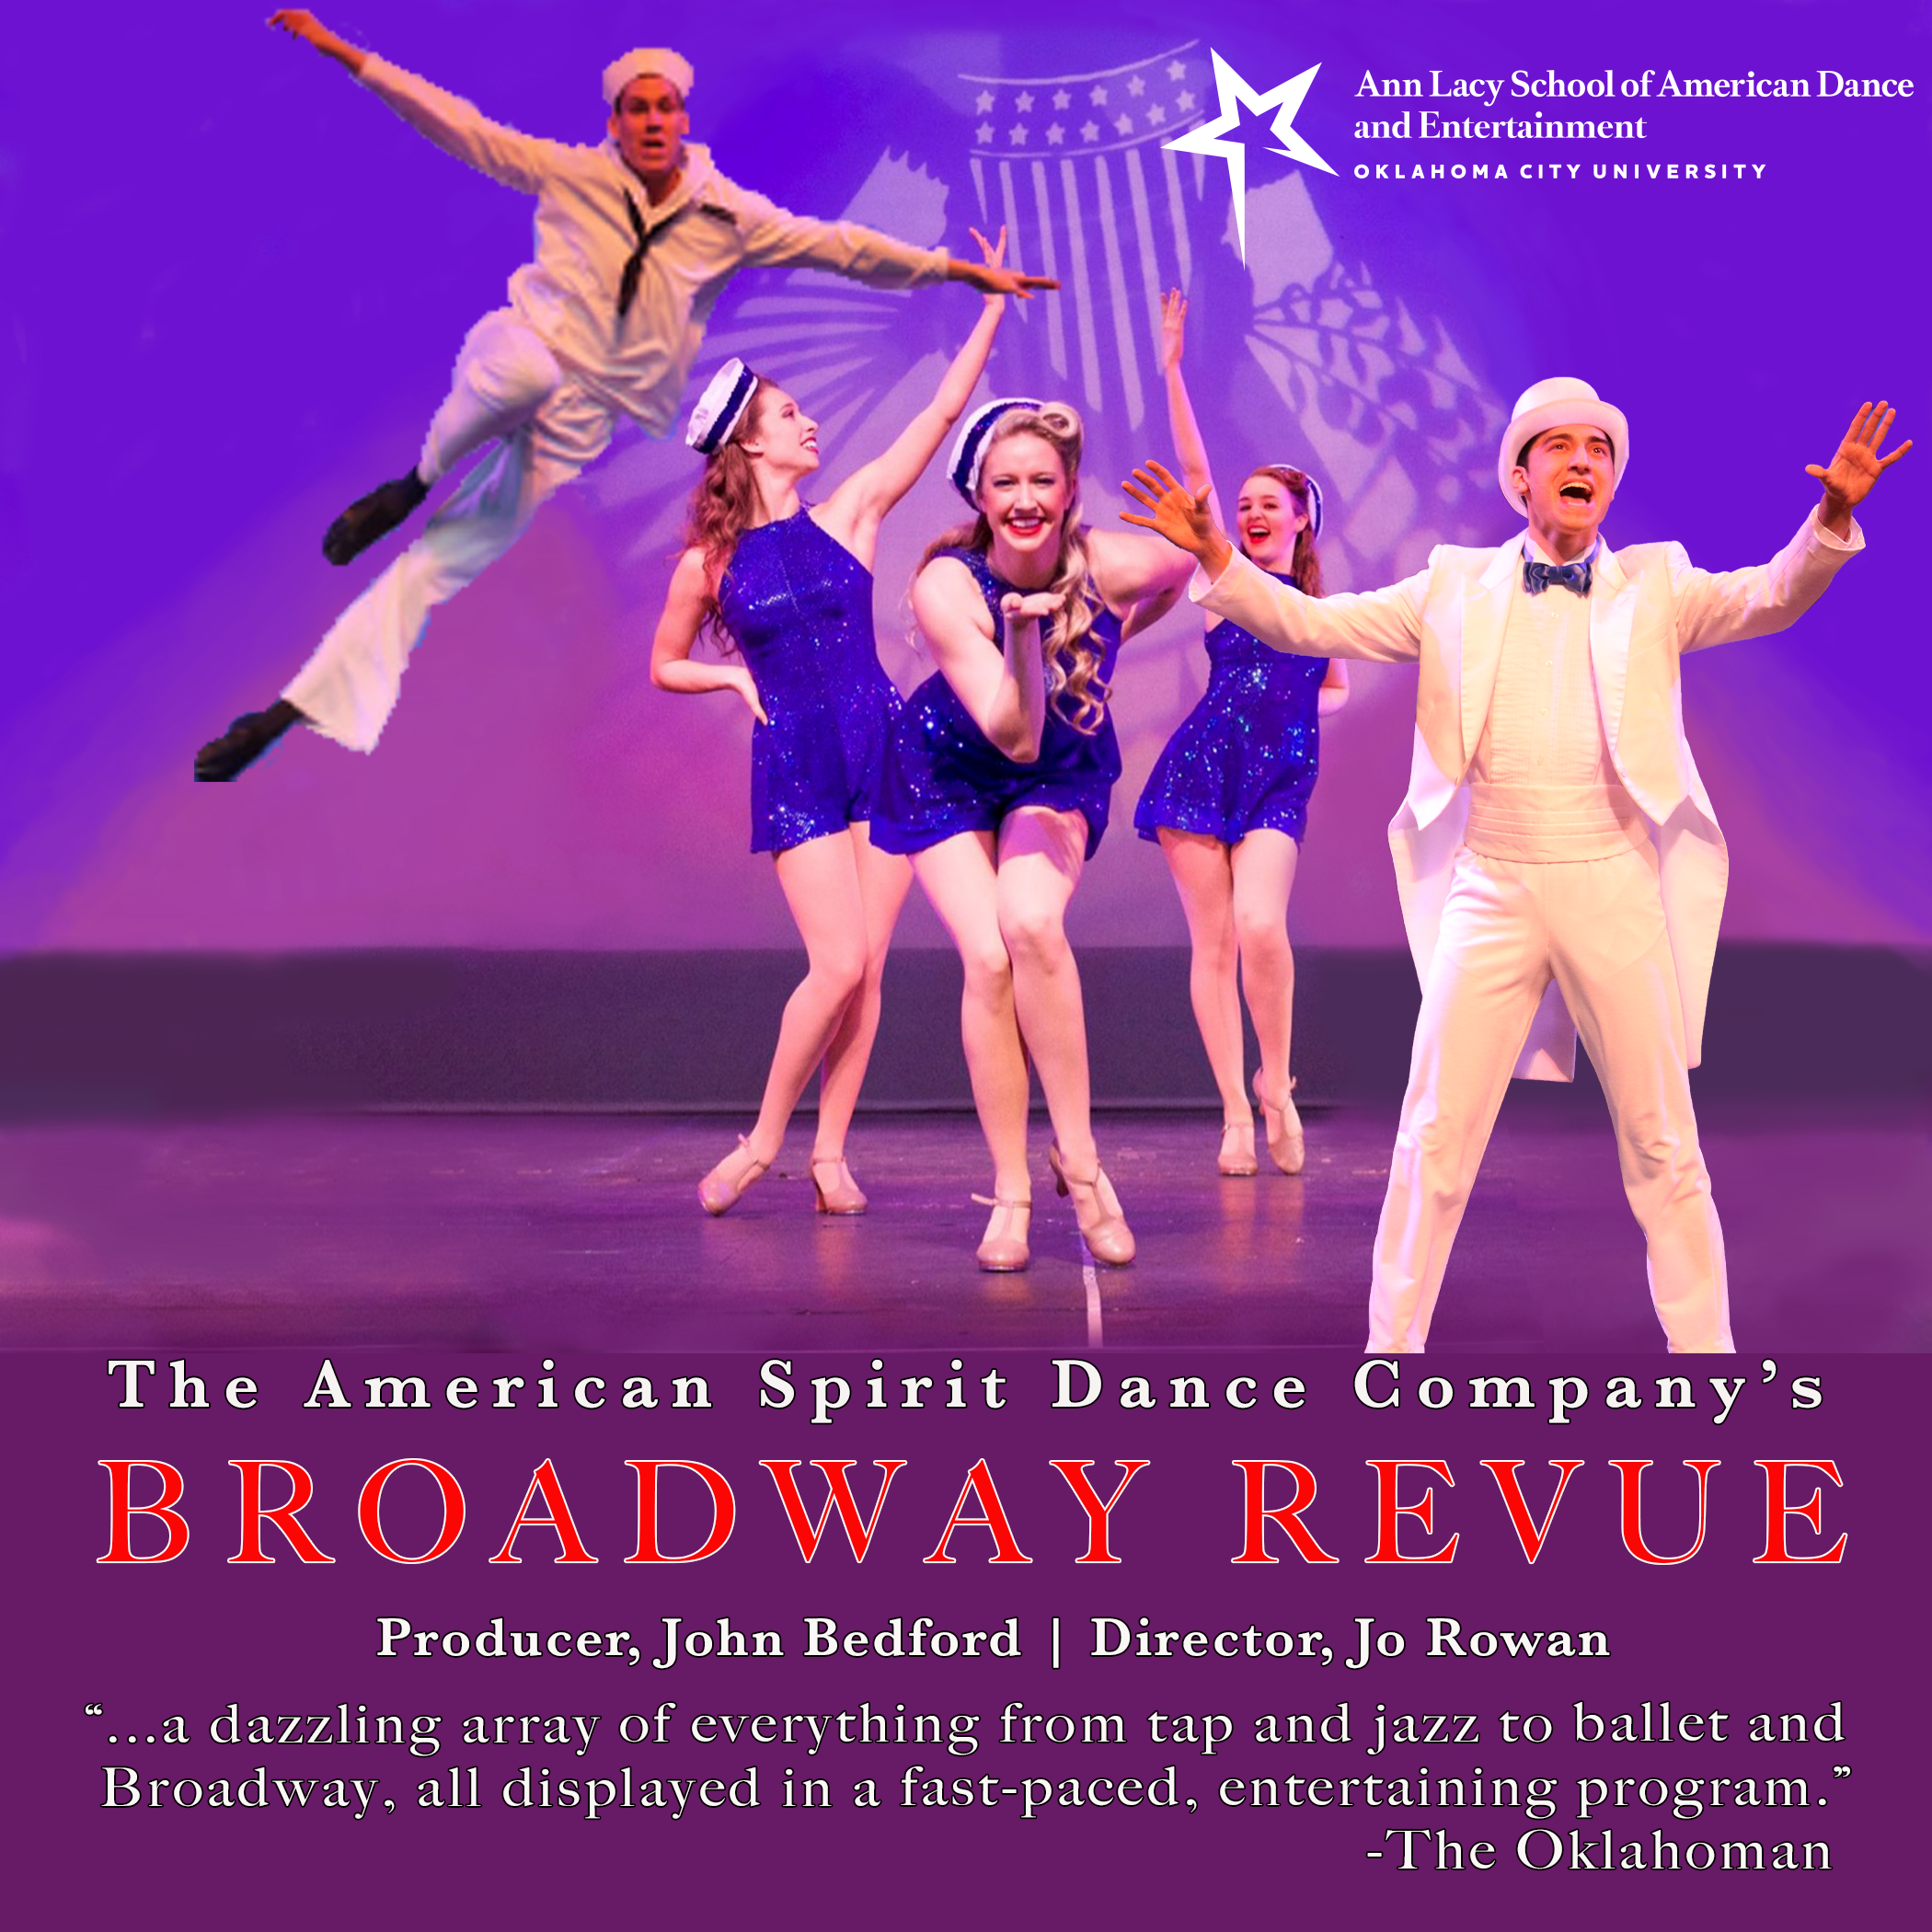 "Image: 2 male dancers and 3 female dancers in blue and white costumes. Text: The American Spirit Dance Company's Broadway Revue. Producer, John Bedford. Director, Jo Rowan. ""…a dazzling array of everything from tap and jazz to ballet and Broadway, all displayed in a fast-paced, entertaining program."" – The Oklahoman"